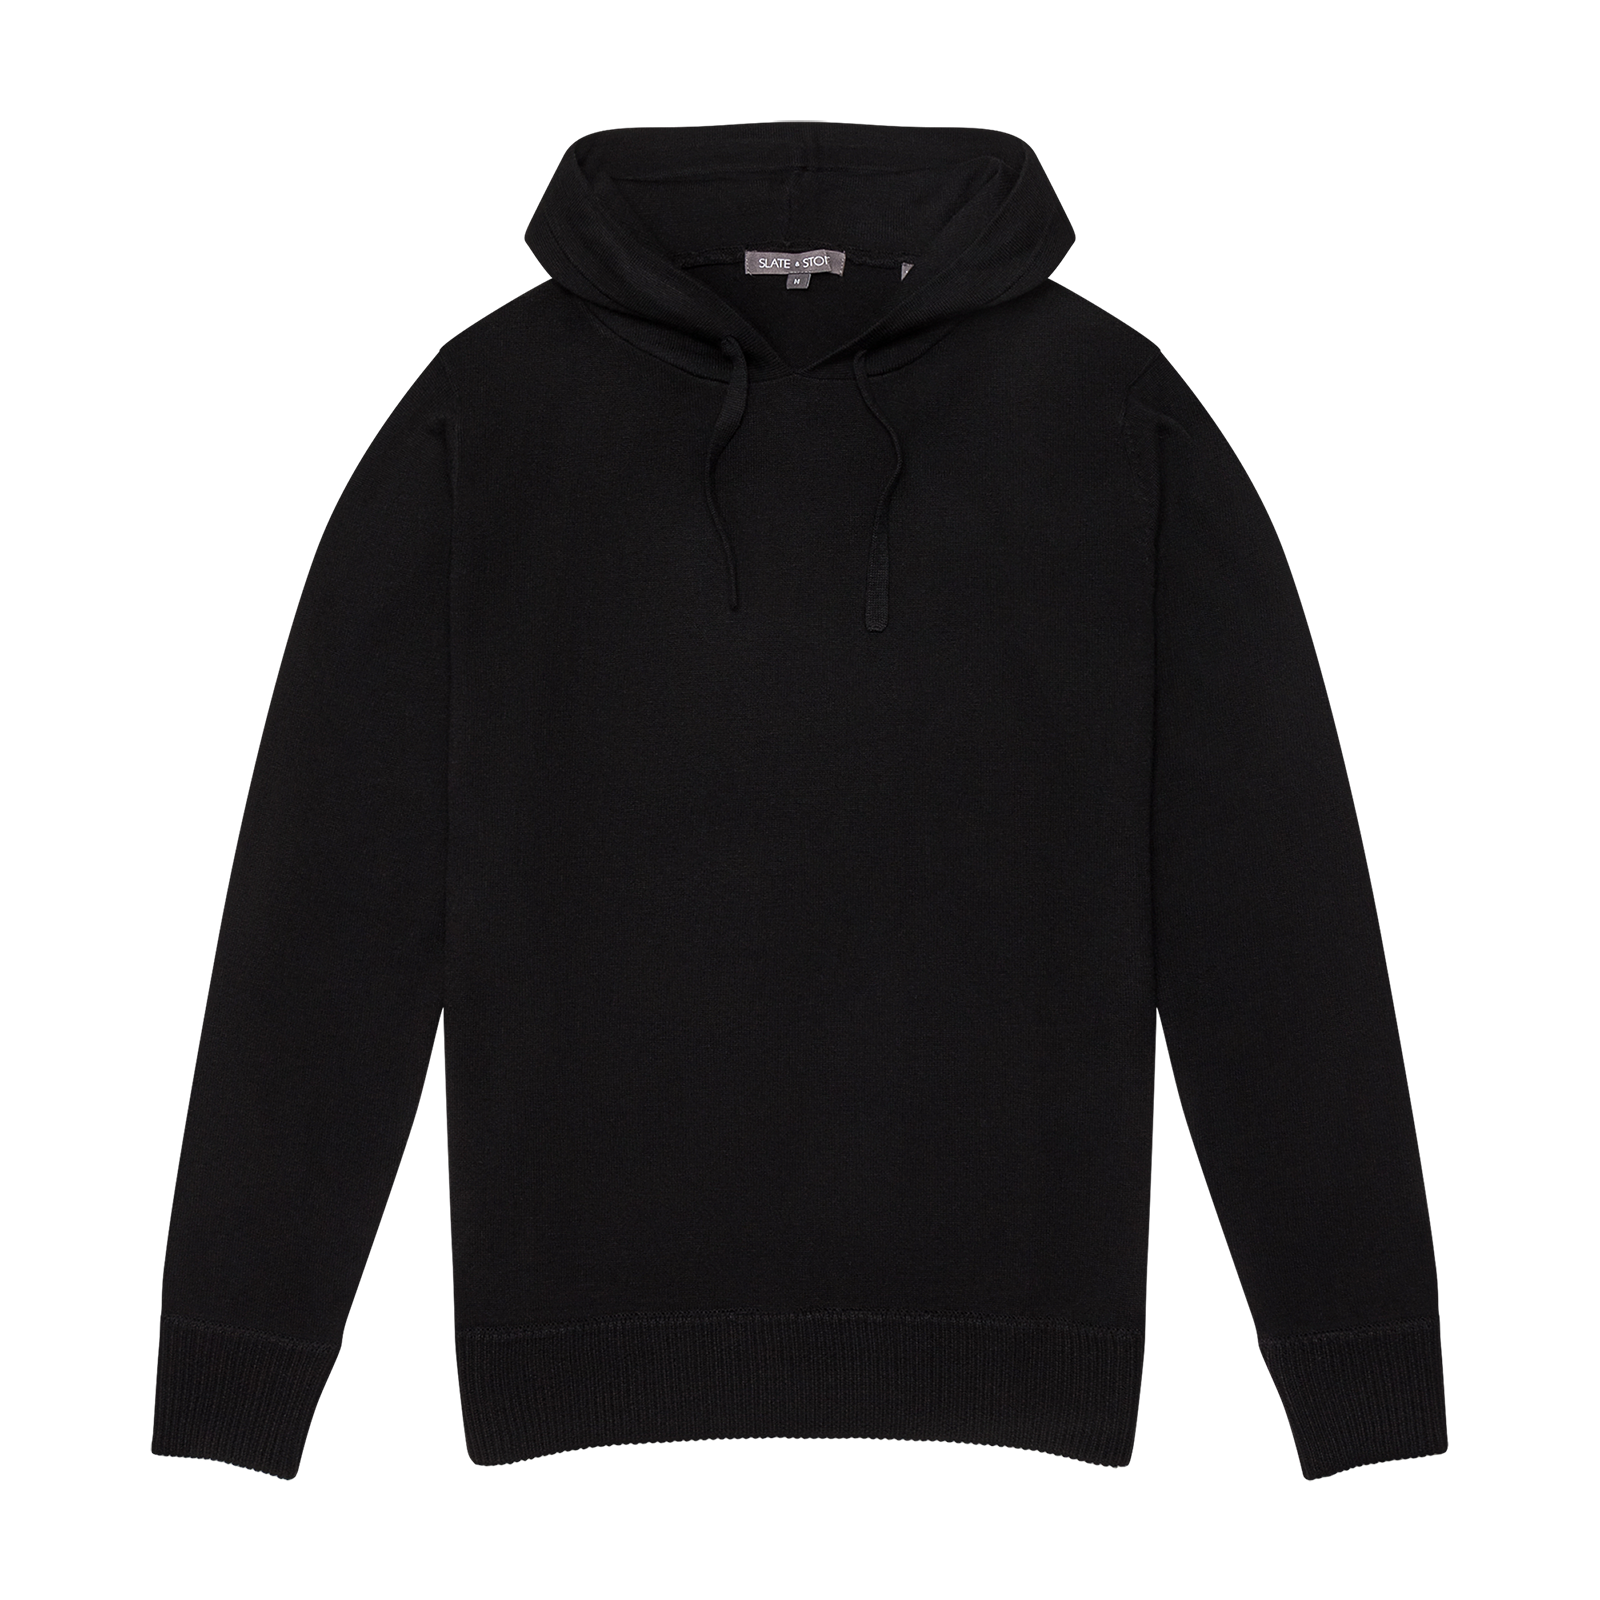 Flat lay hoodie product image